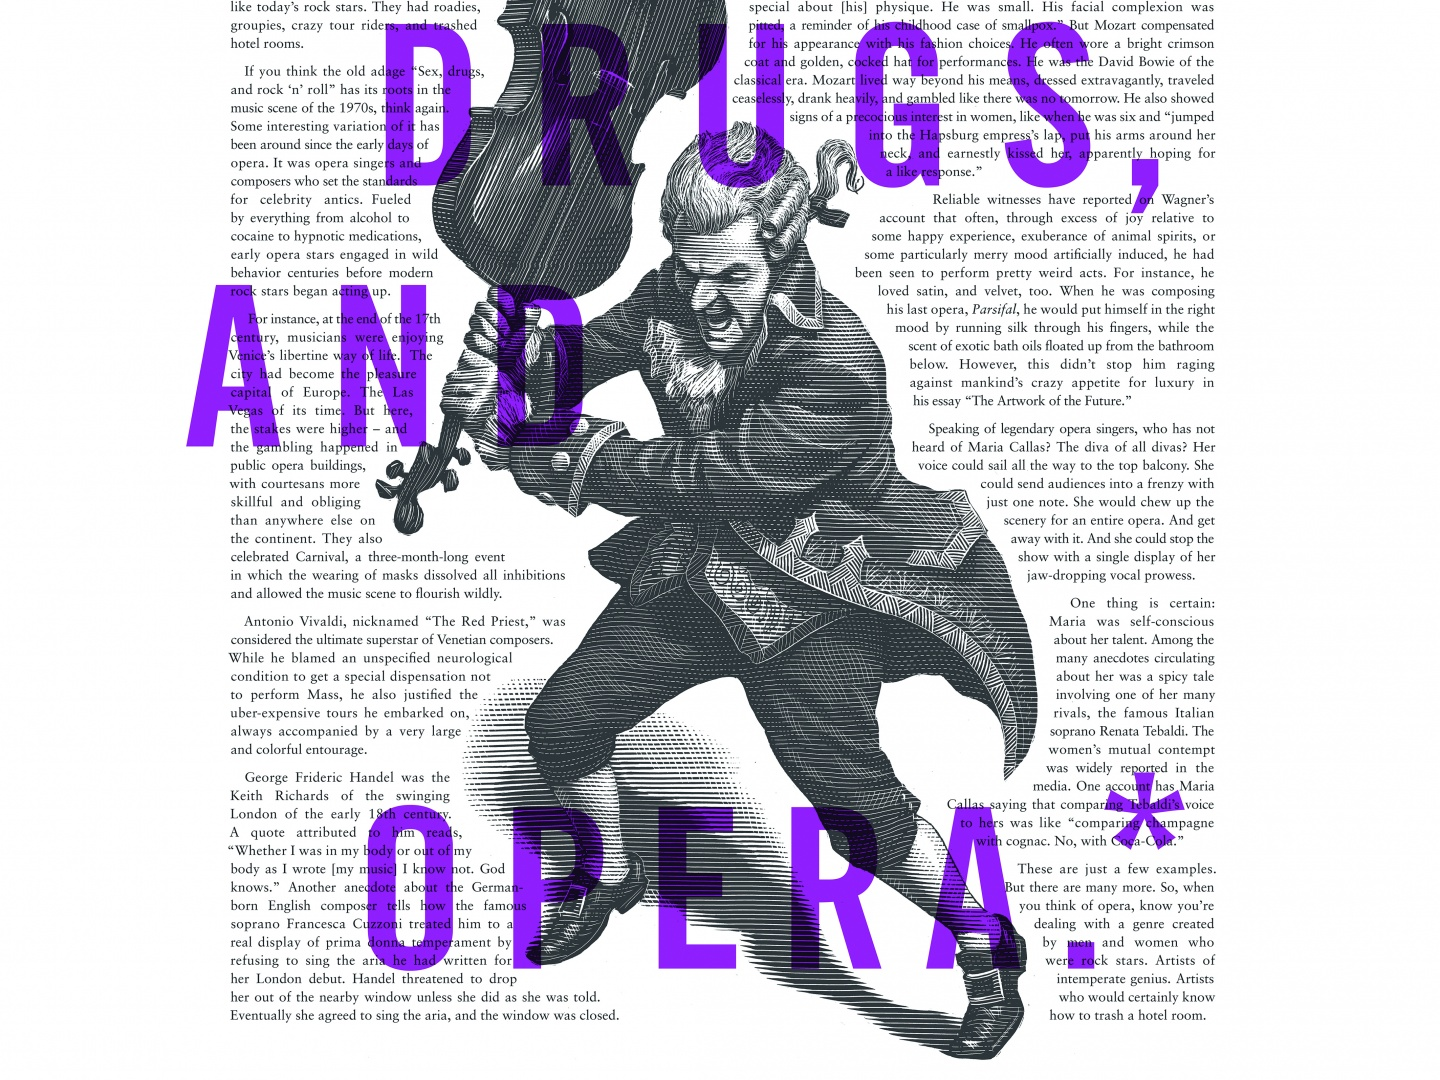 Lyric Opera Print Campaign: Sex and Drugs Thumbnail